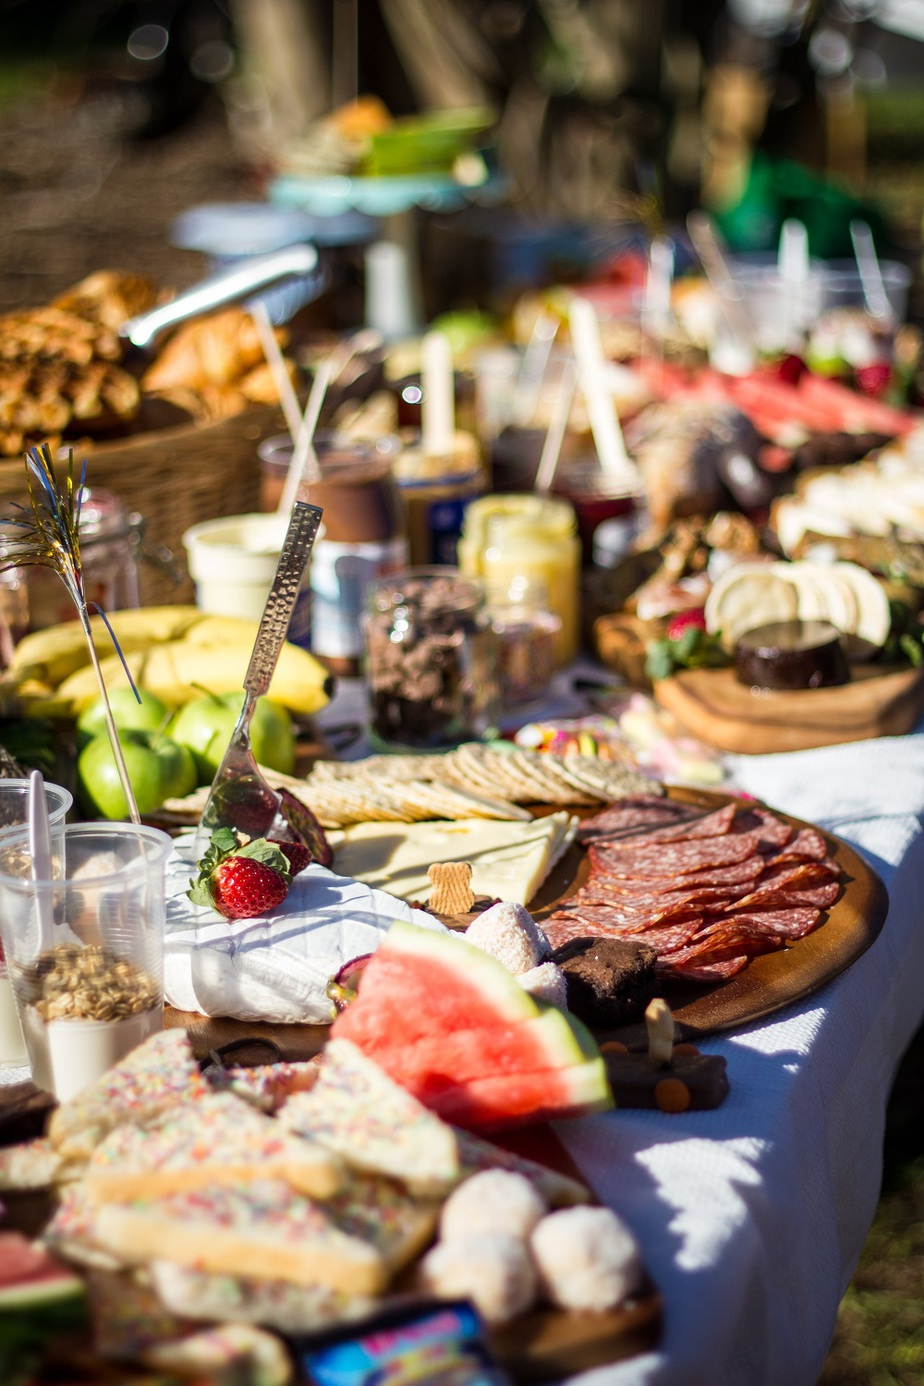 Wedding food ideas on a budget buffet! Wedding reception food tips and ideas to help stay within budget. Low funds doesn't have to mean a boring wedding menu. Here are ideas for making your food unique while still keeping the costs low!